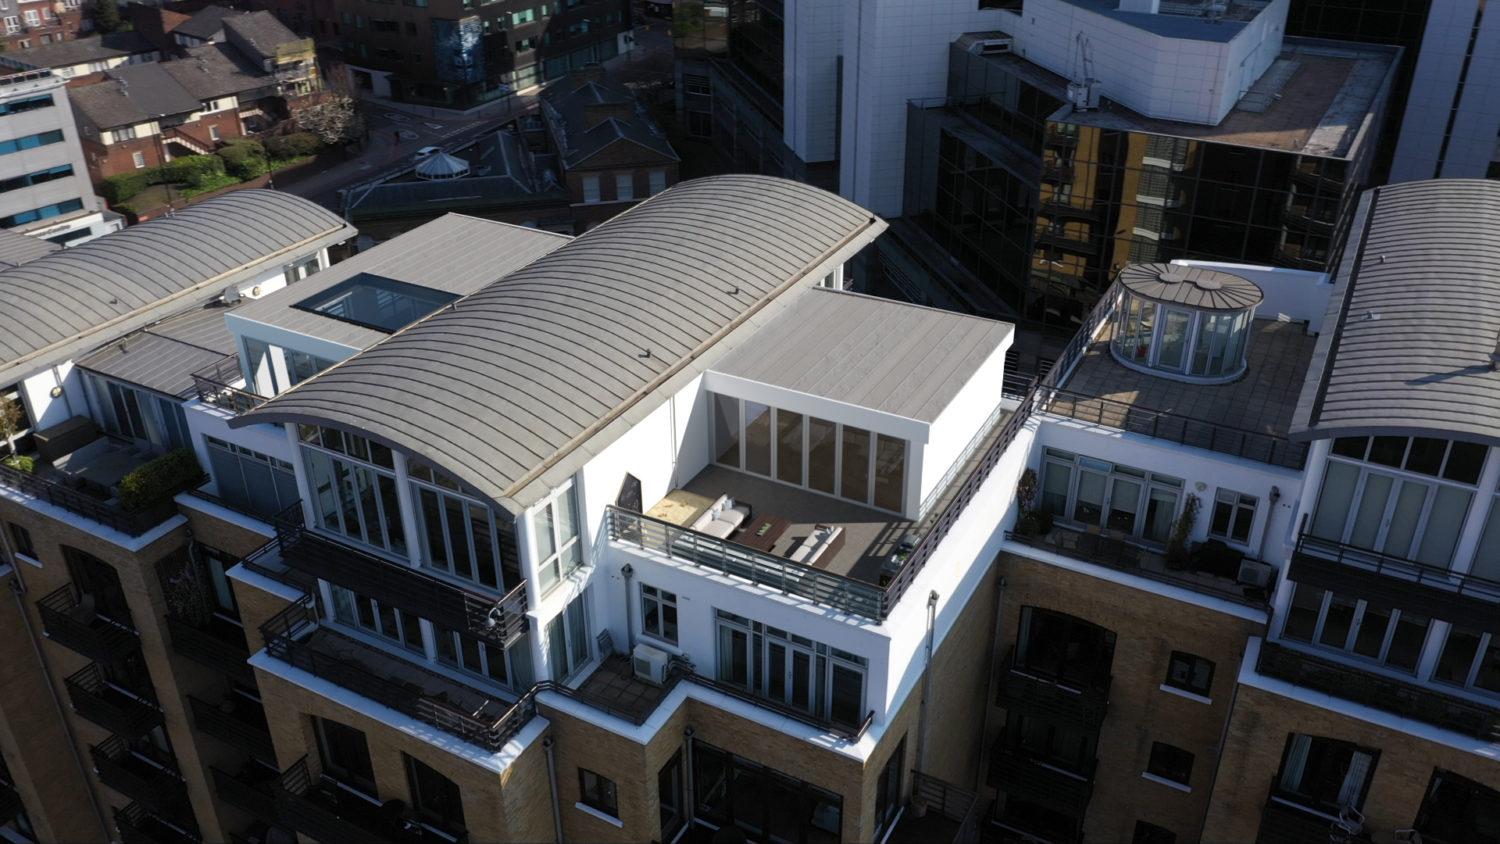 teal court drone shot showing penthouse terrace with CGI extension